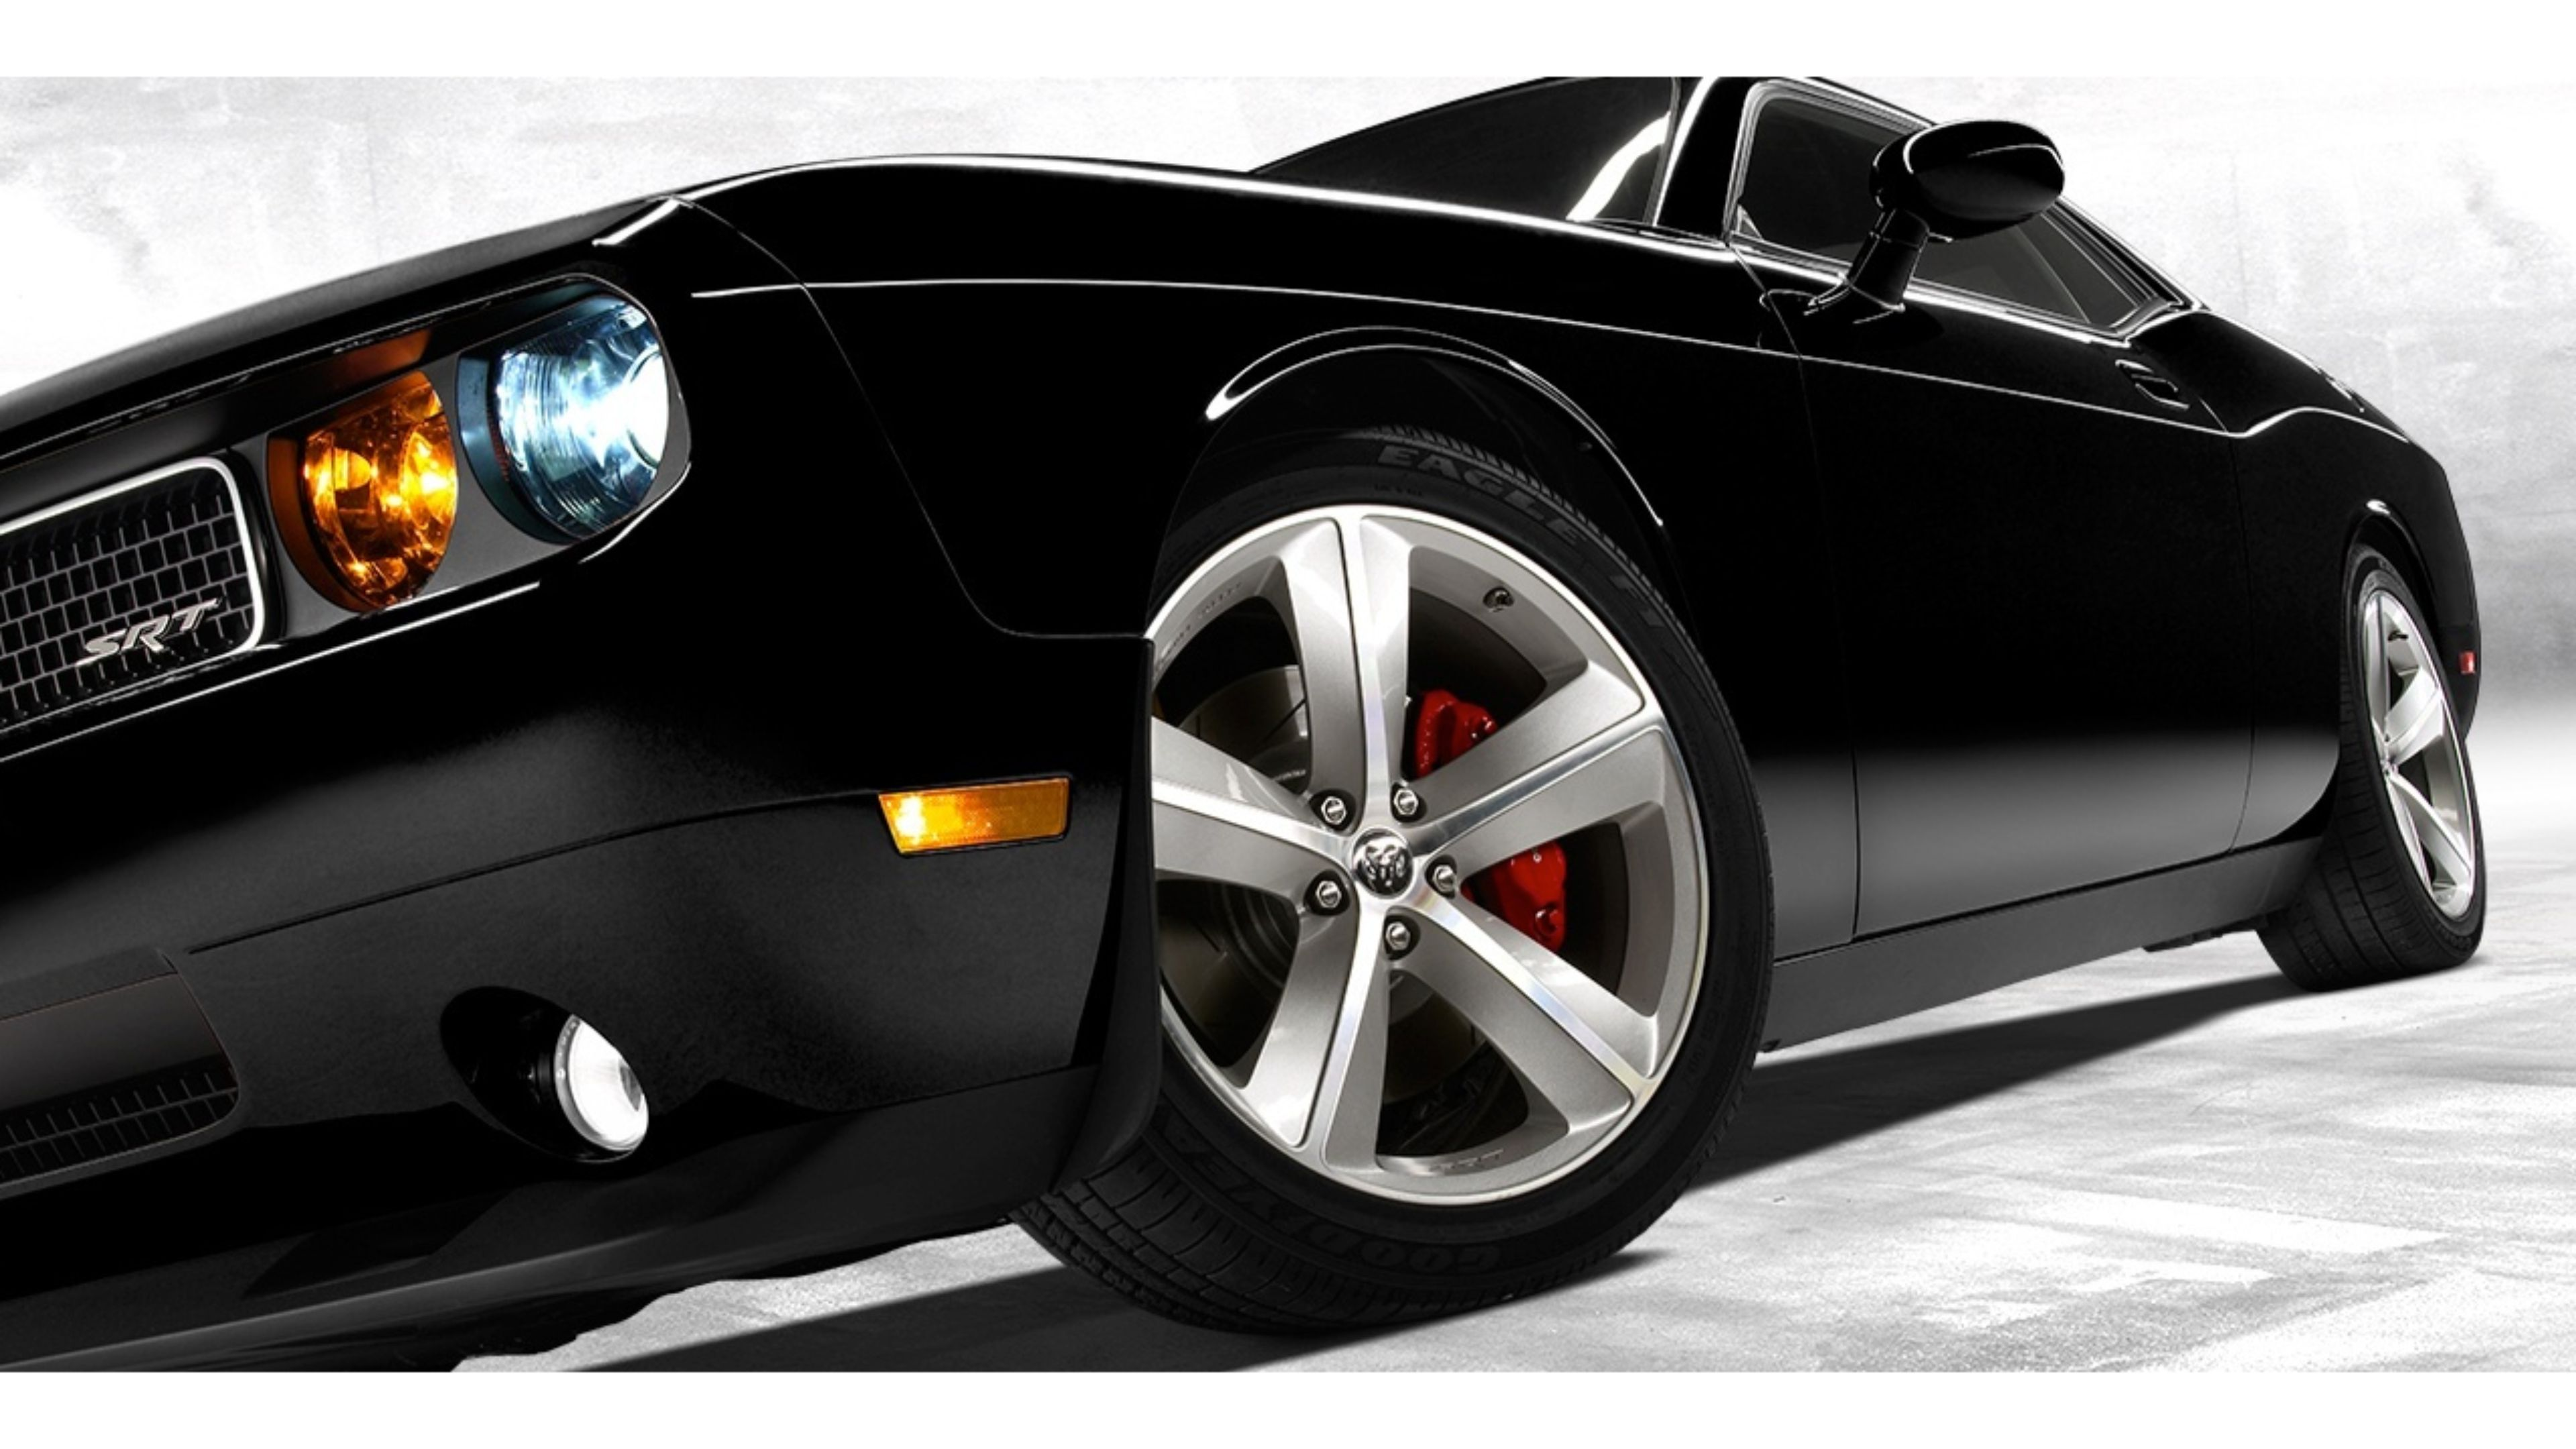 Fast And The Furious 7 Hd 966644 Hd Wallpaper Backgrounds